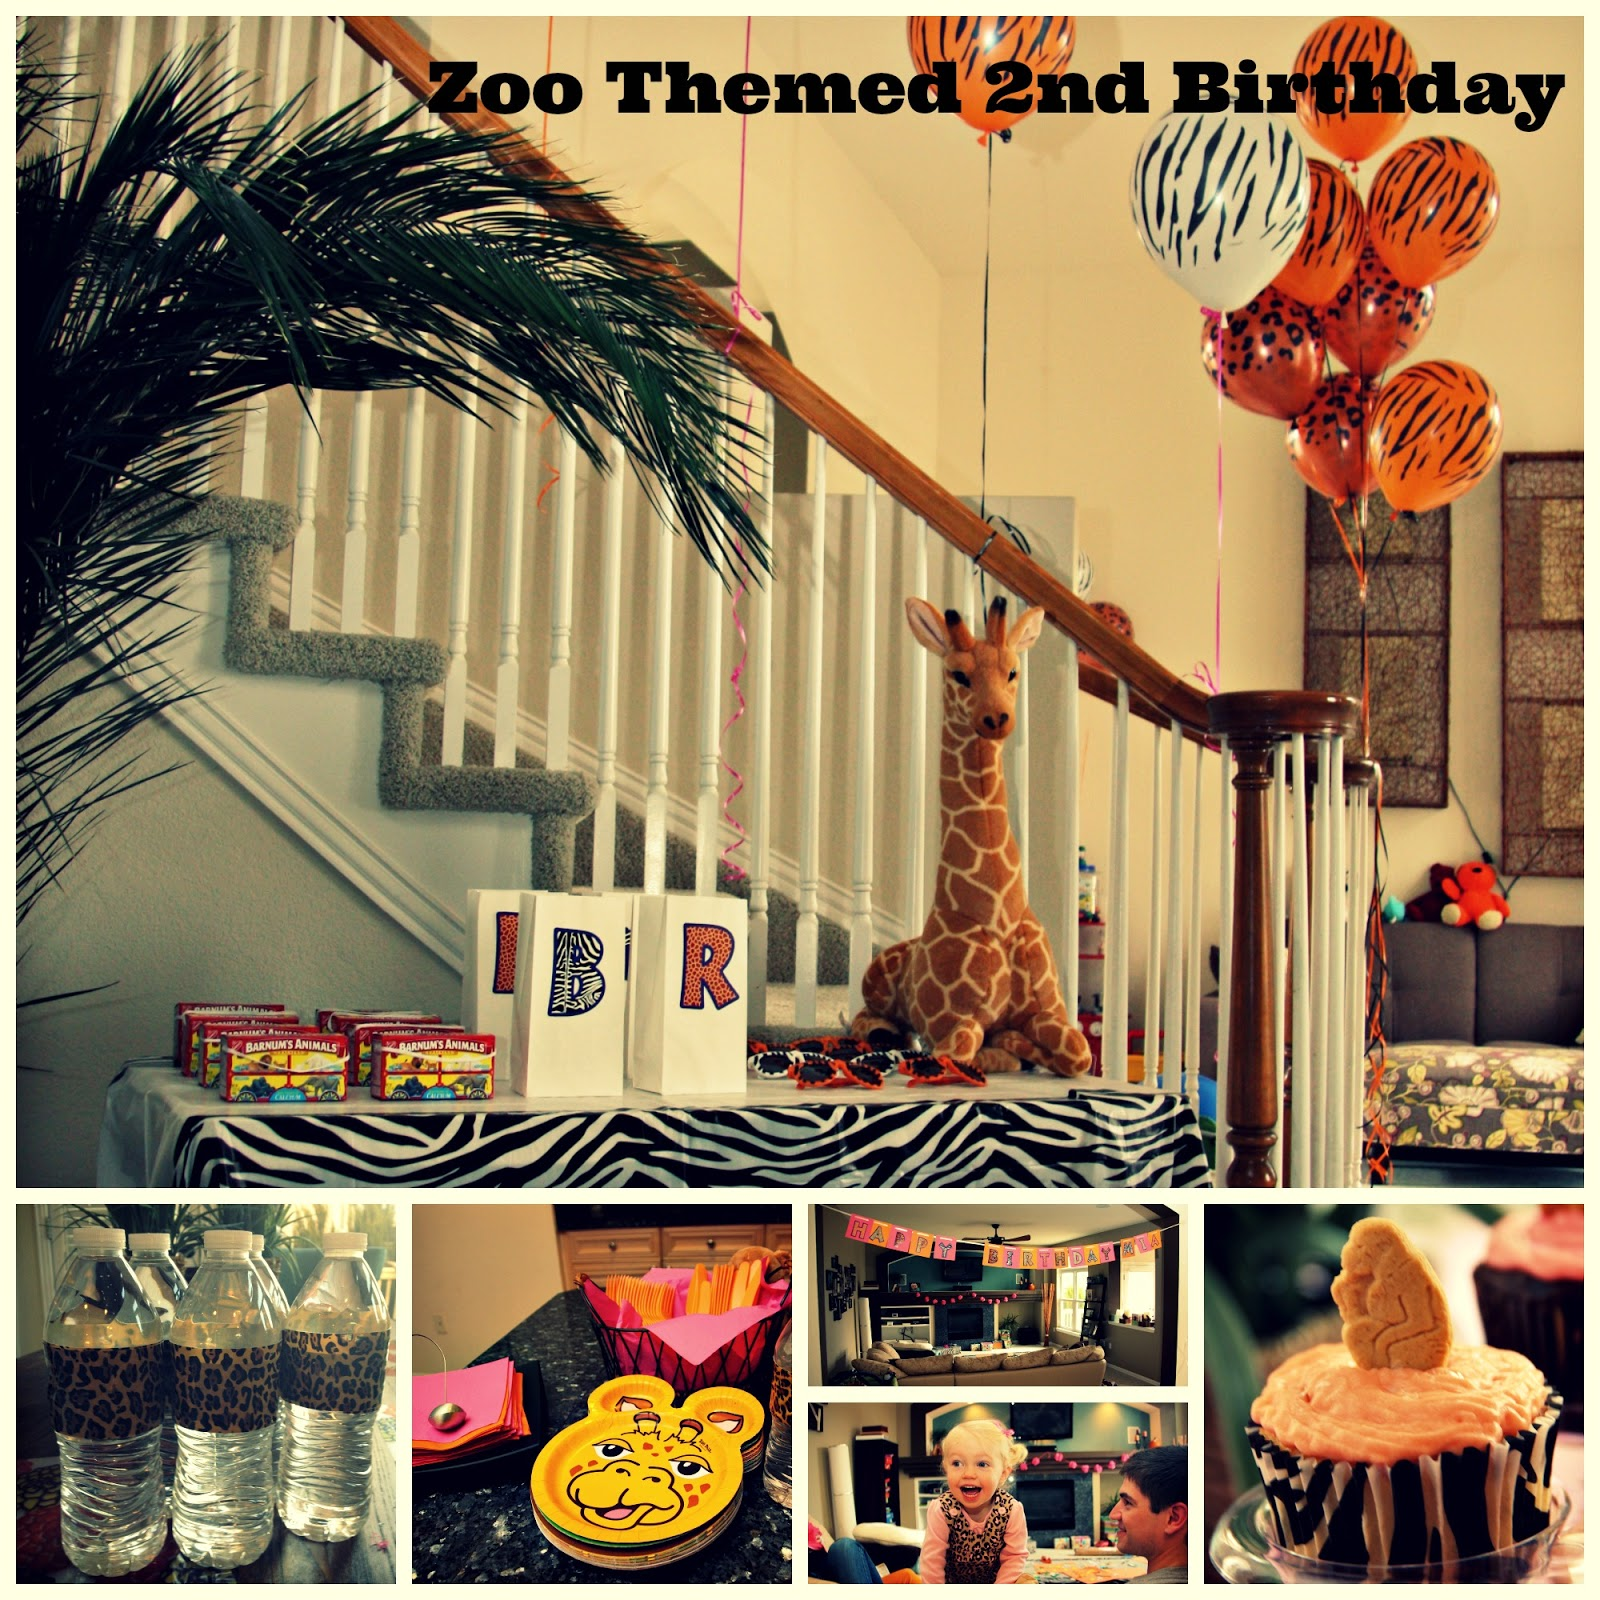 Keeping Up With The Joneses: A Zoo Themed 2nd Birthday